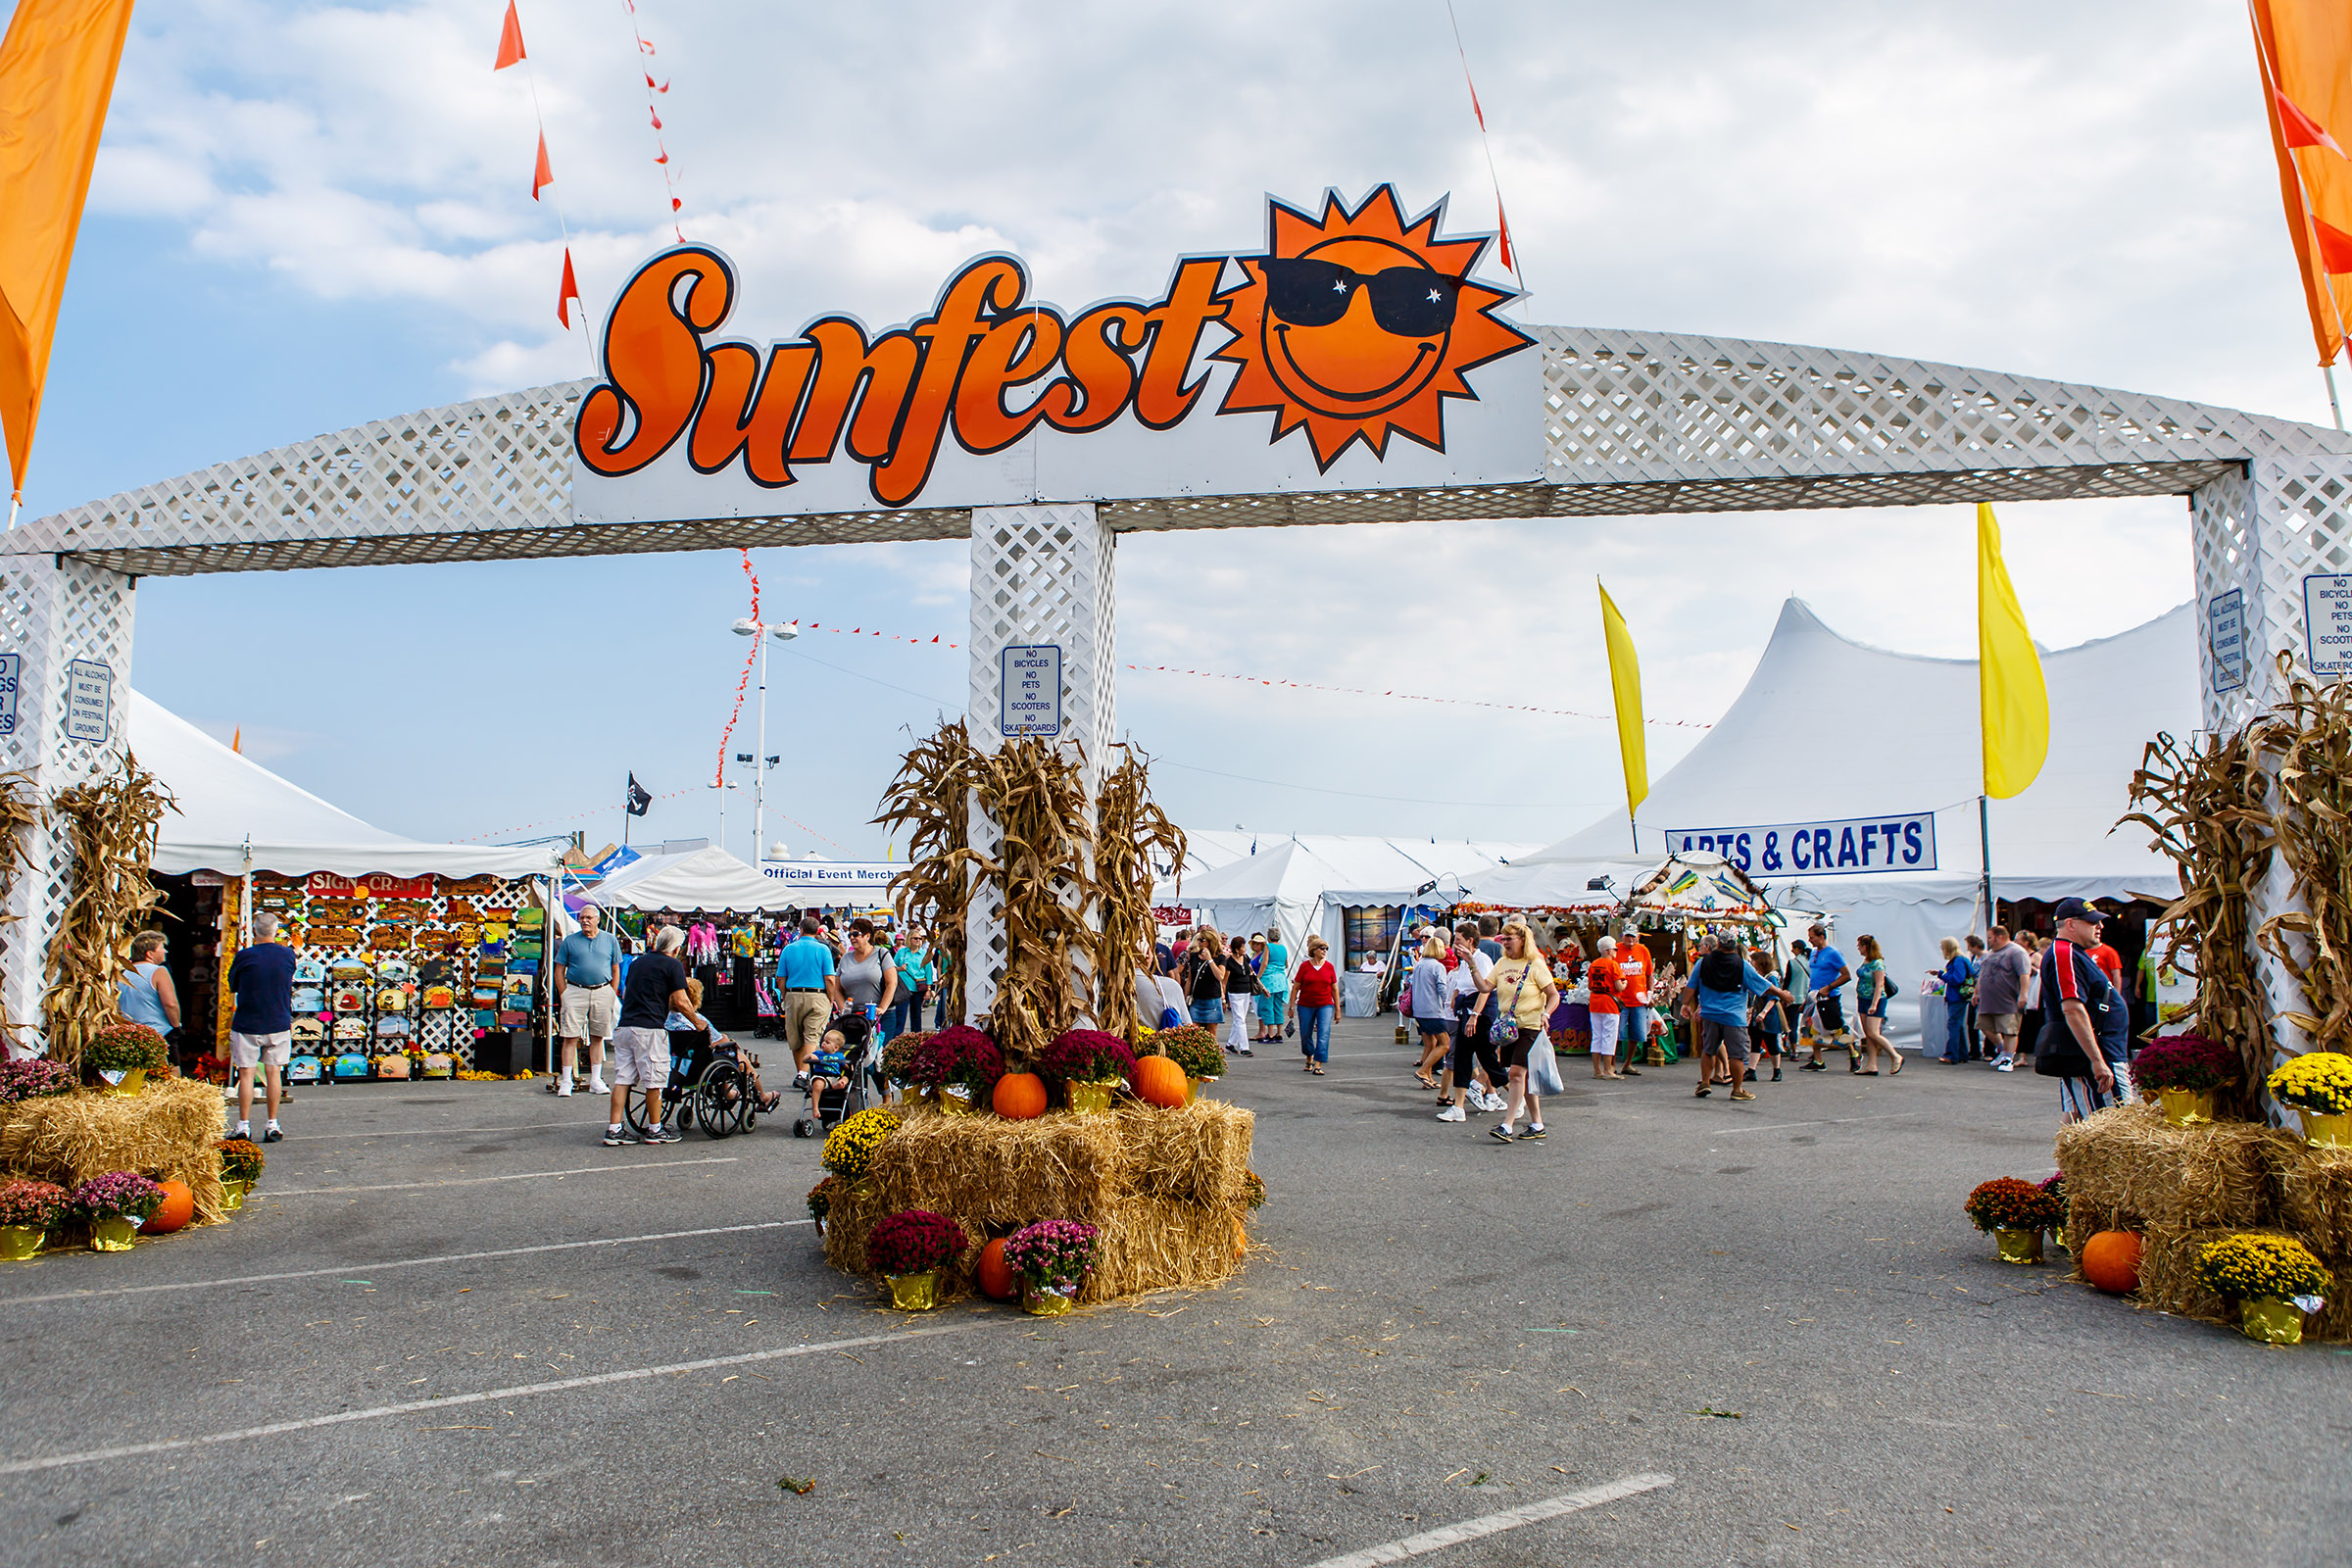 Sunfest Unlikely, Alternative SunLITE Event Proposed